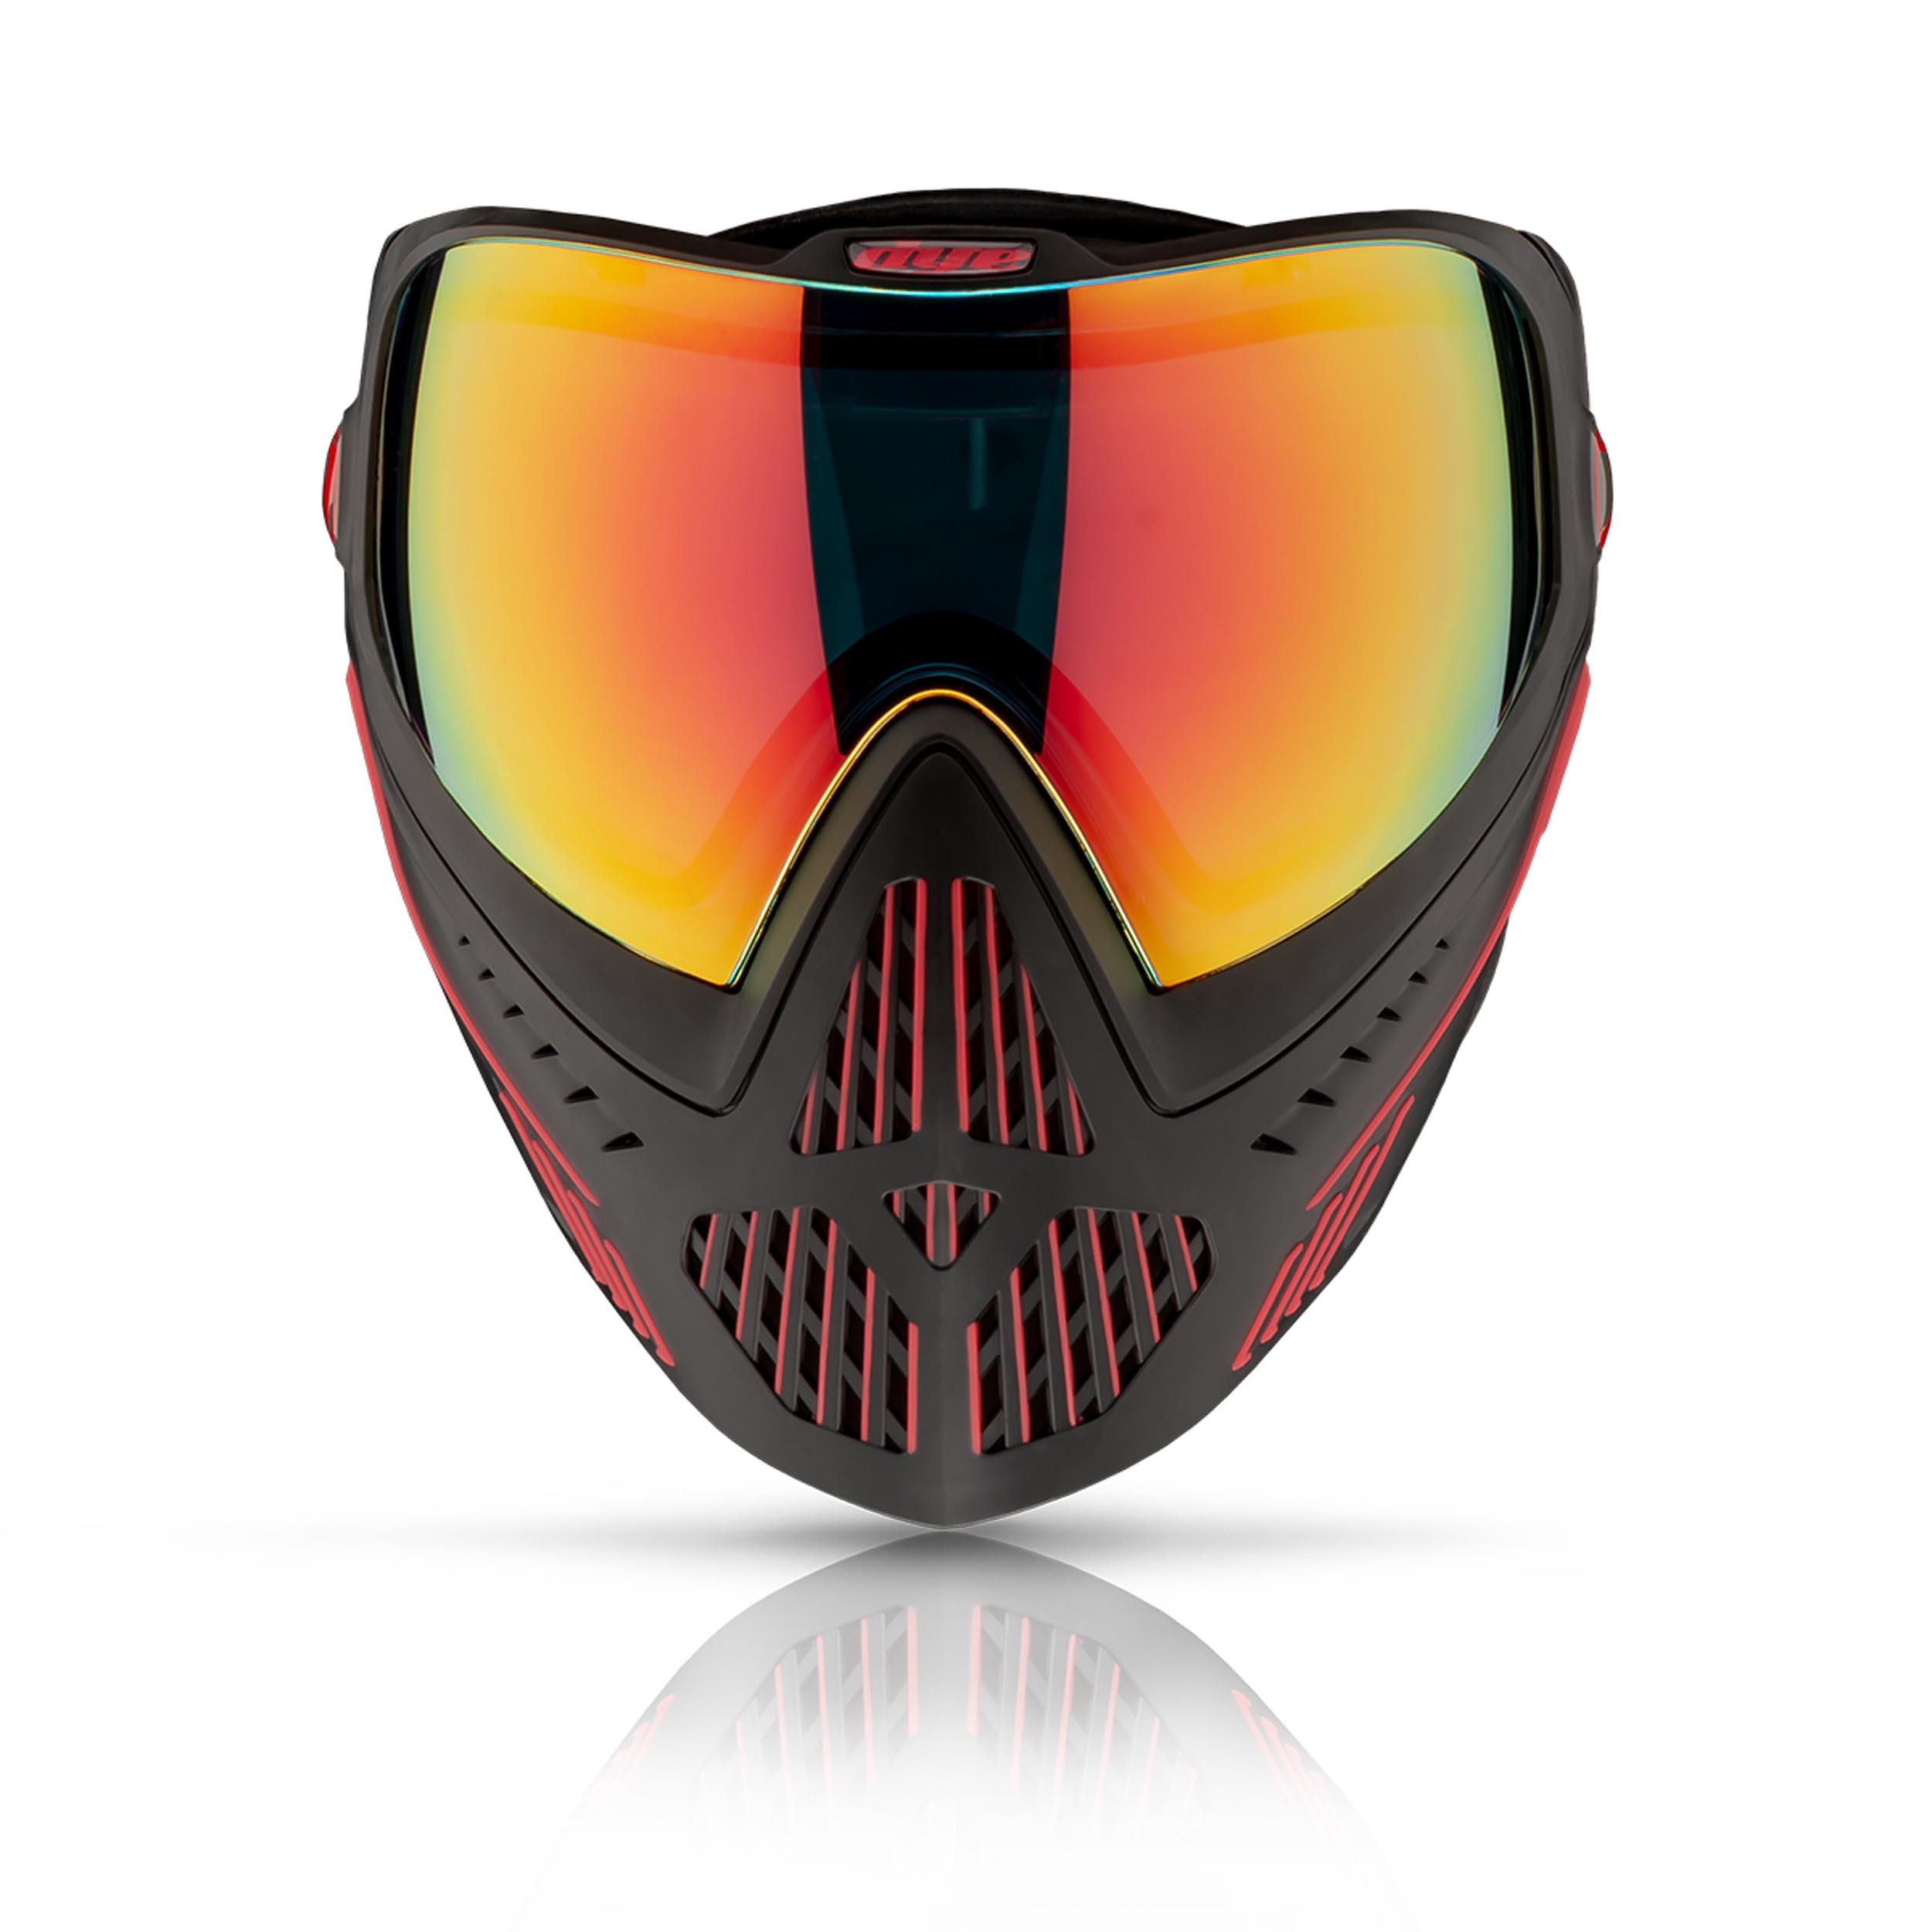 MAS471 Dye I5 thermal Fire Black Red 2.0 - MAS471